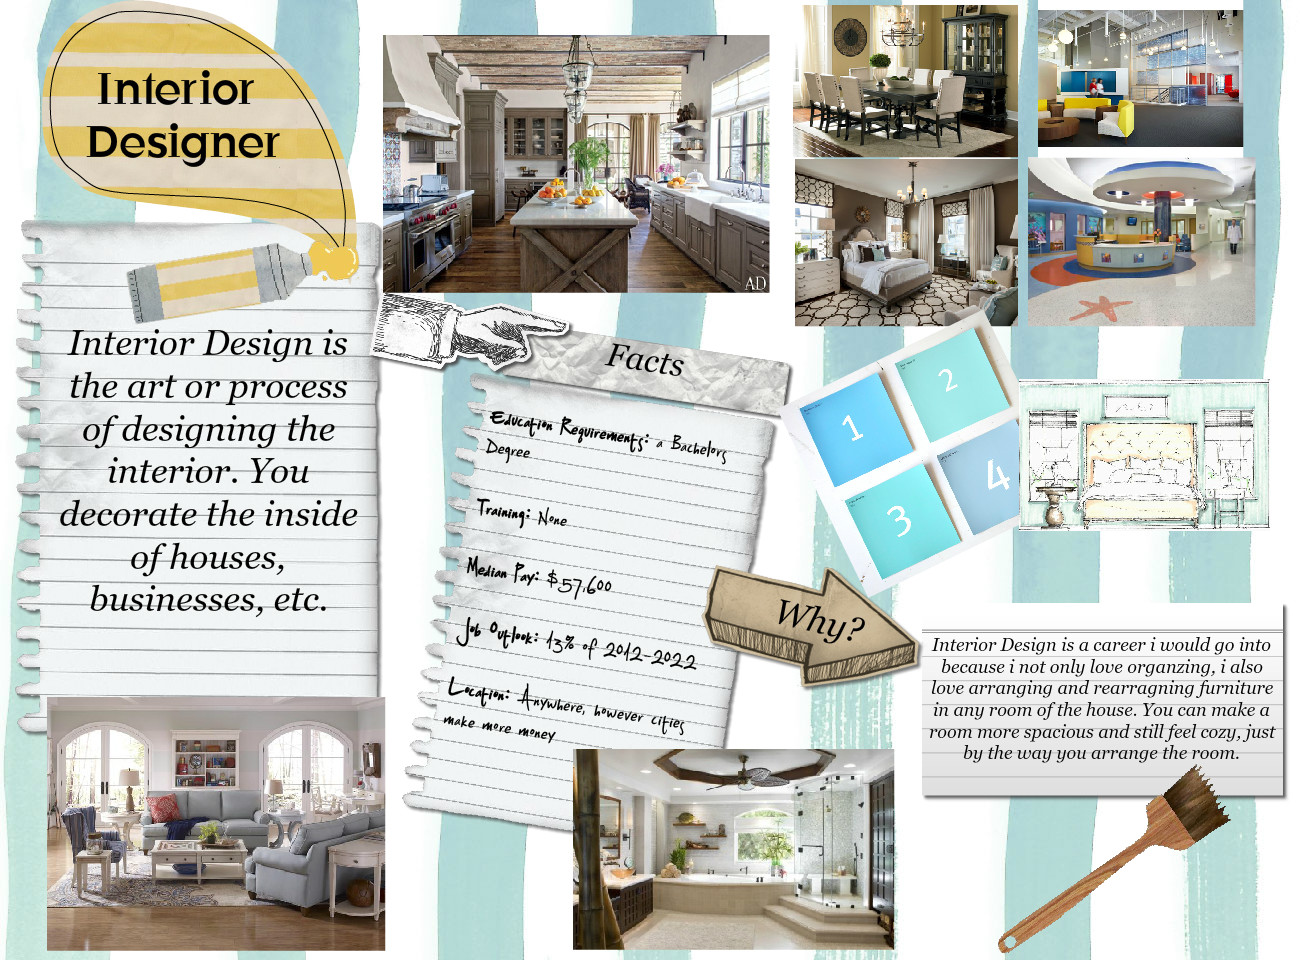 Interior Designer: Architecture, Career, Decorate, Designer, Education, En,  Facts, Interiot, Job, Set | Glogster EDU   Interactive Multimedia Posters